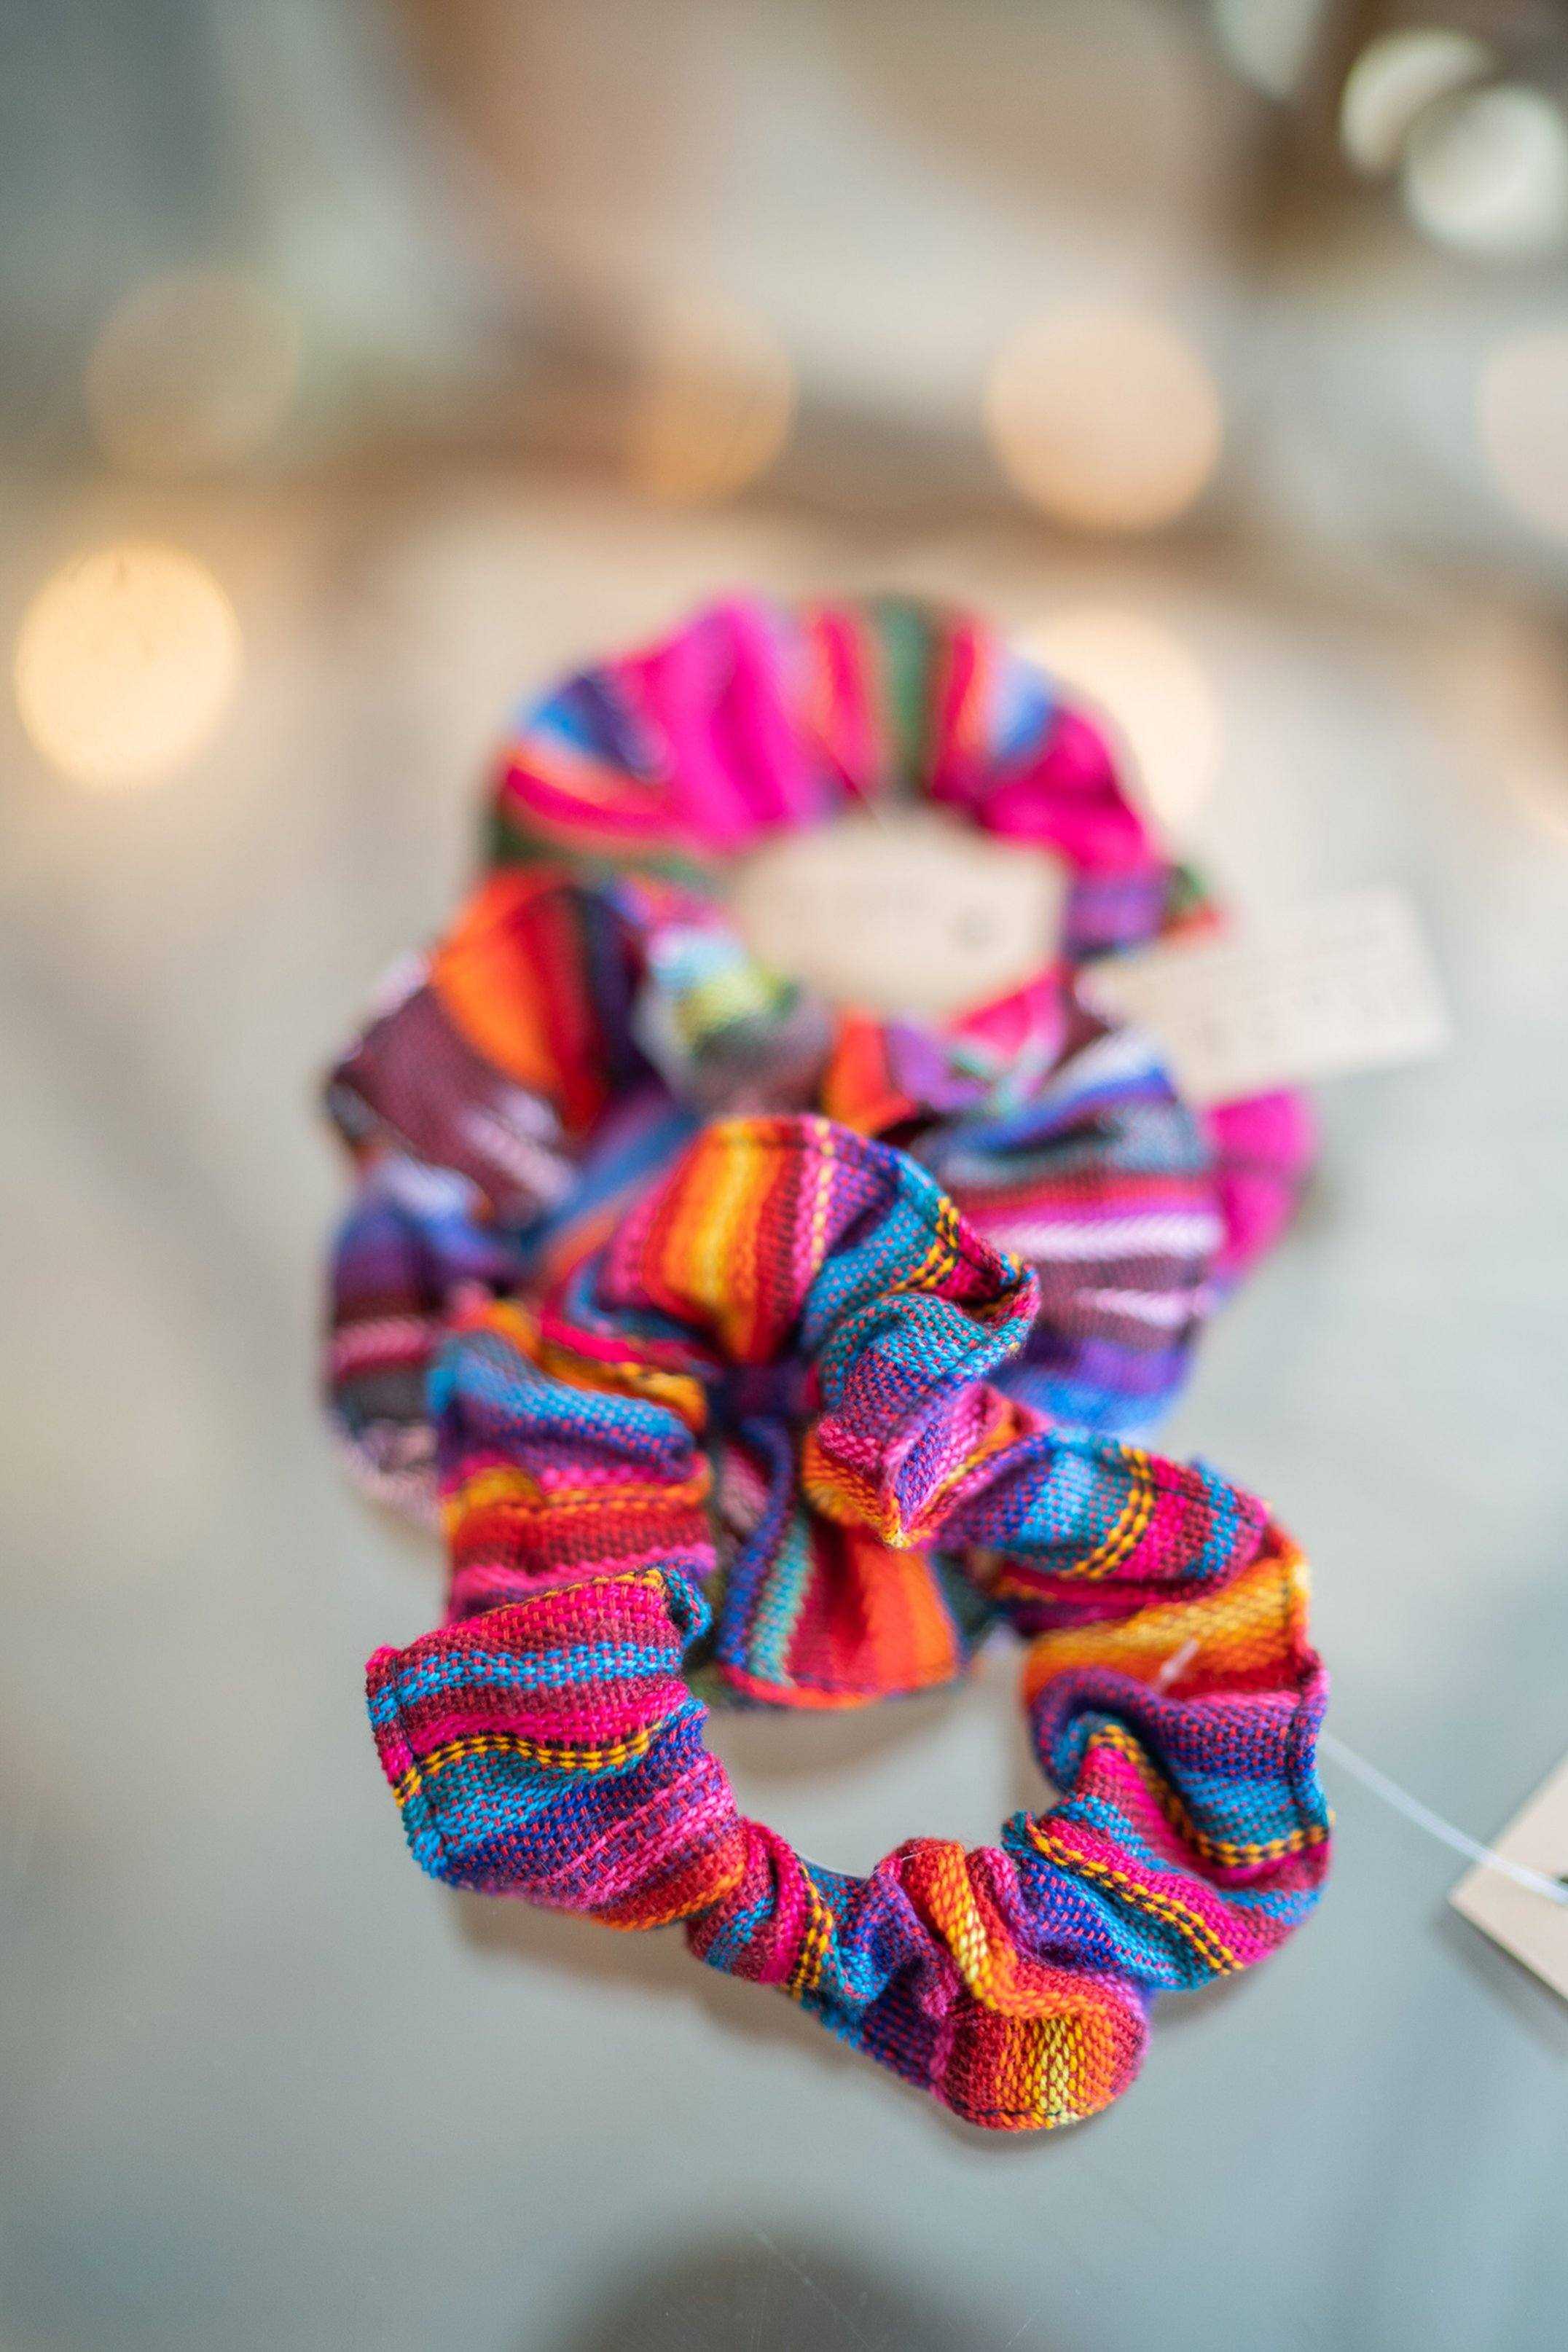 Woven Scrunchie Pinks